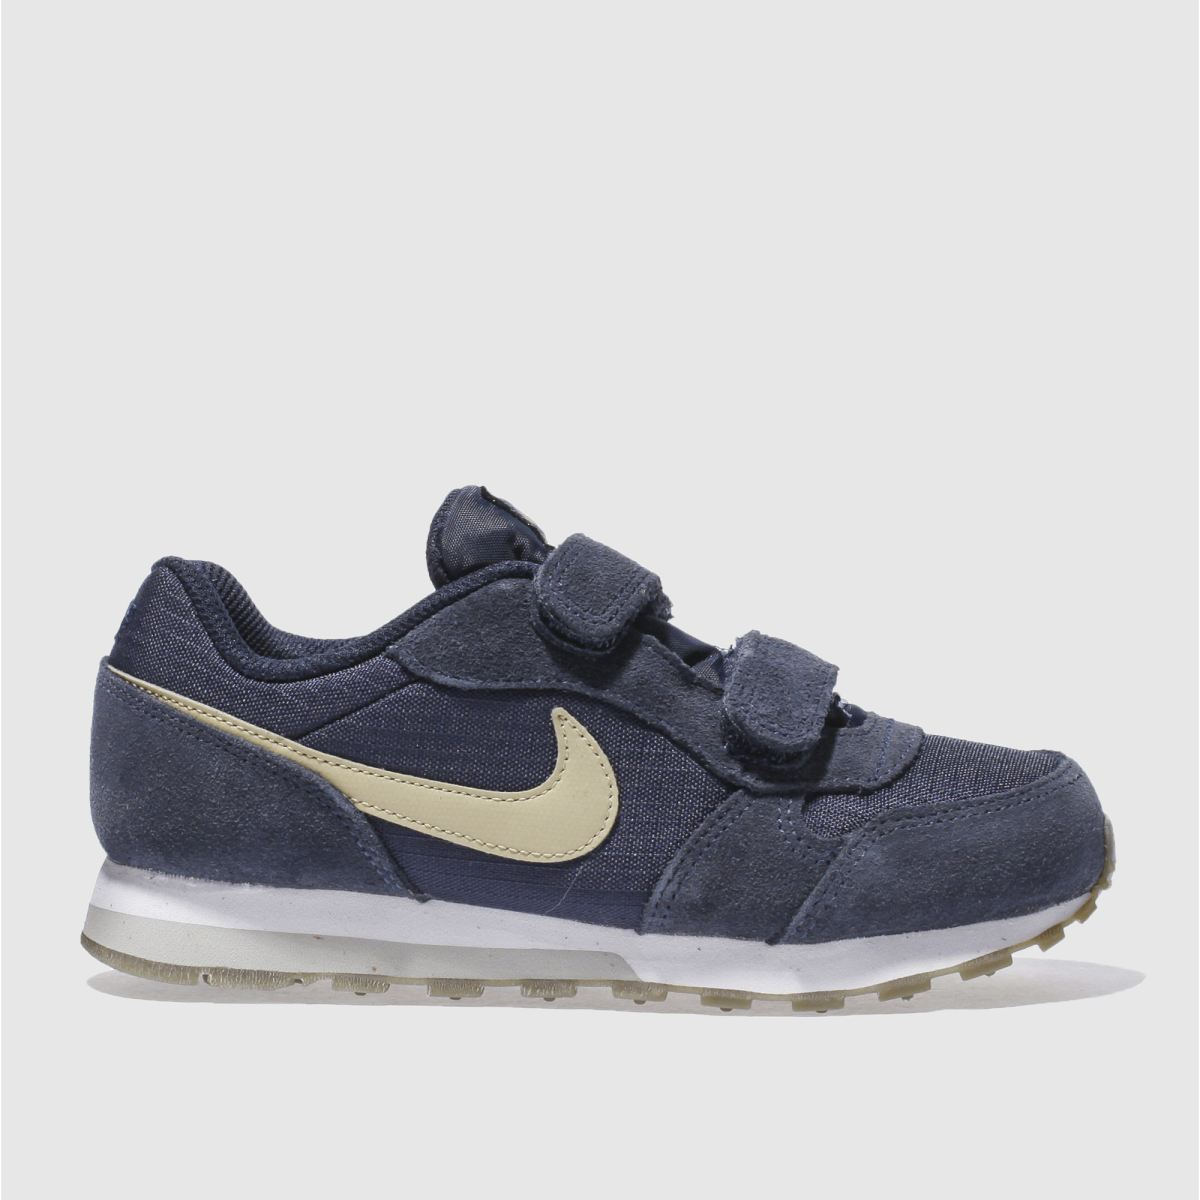 nike navy & stone md runner 2 Boys Junior Trainers